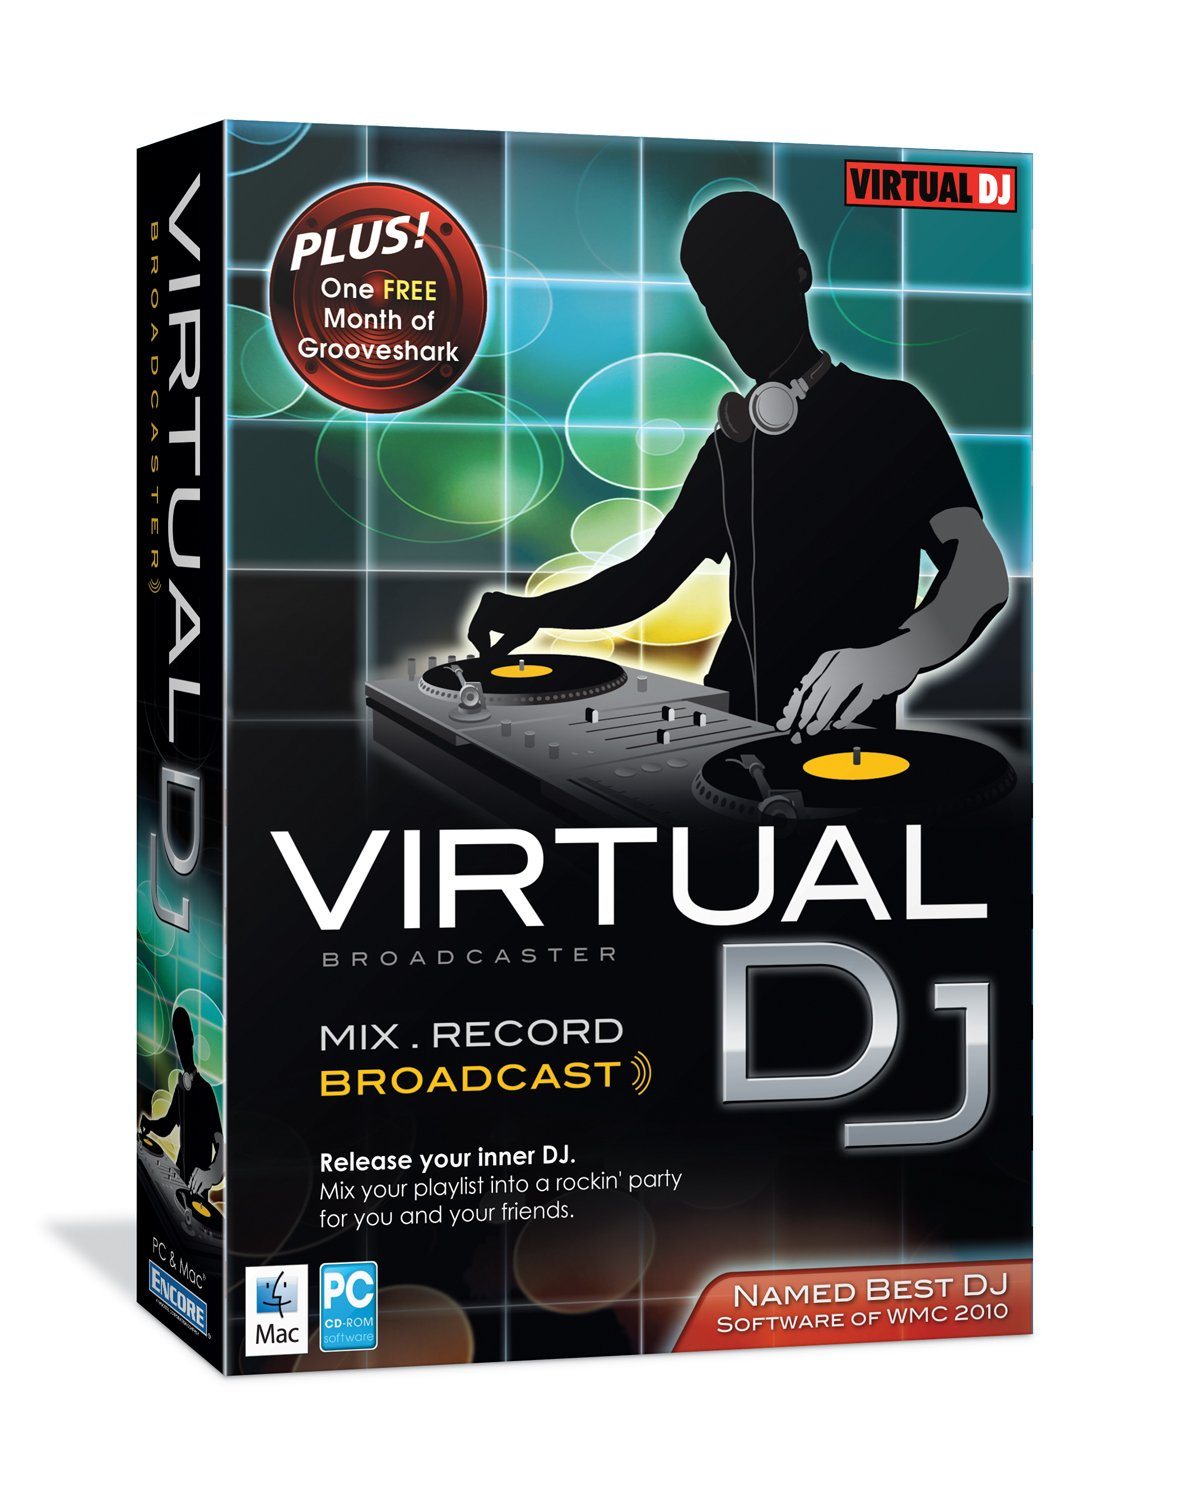 front facing virtual dj broadcaster